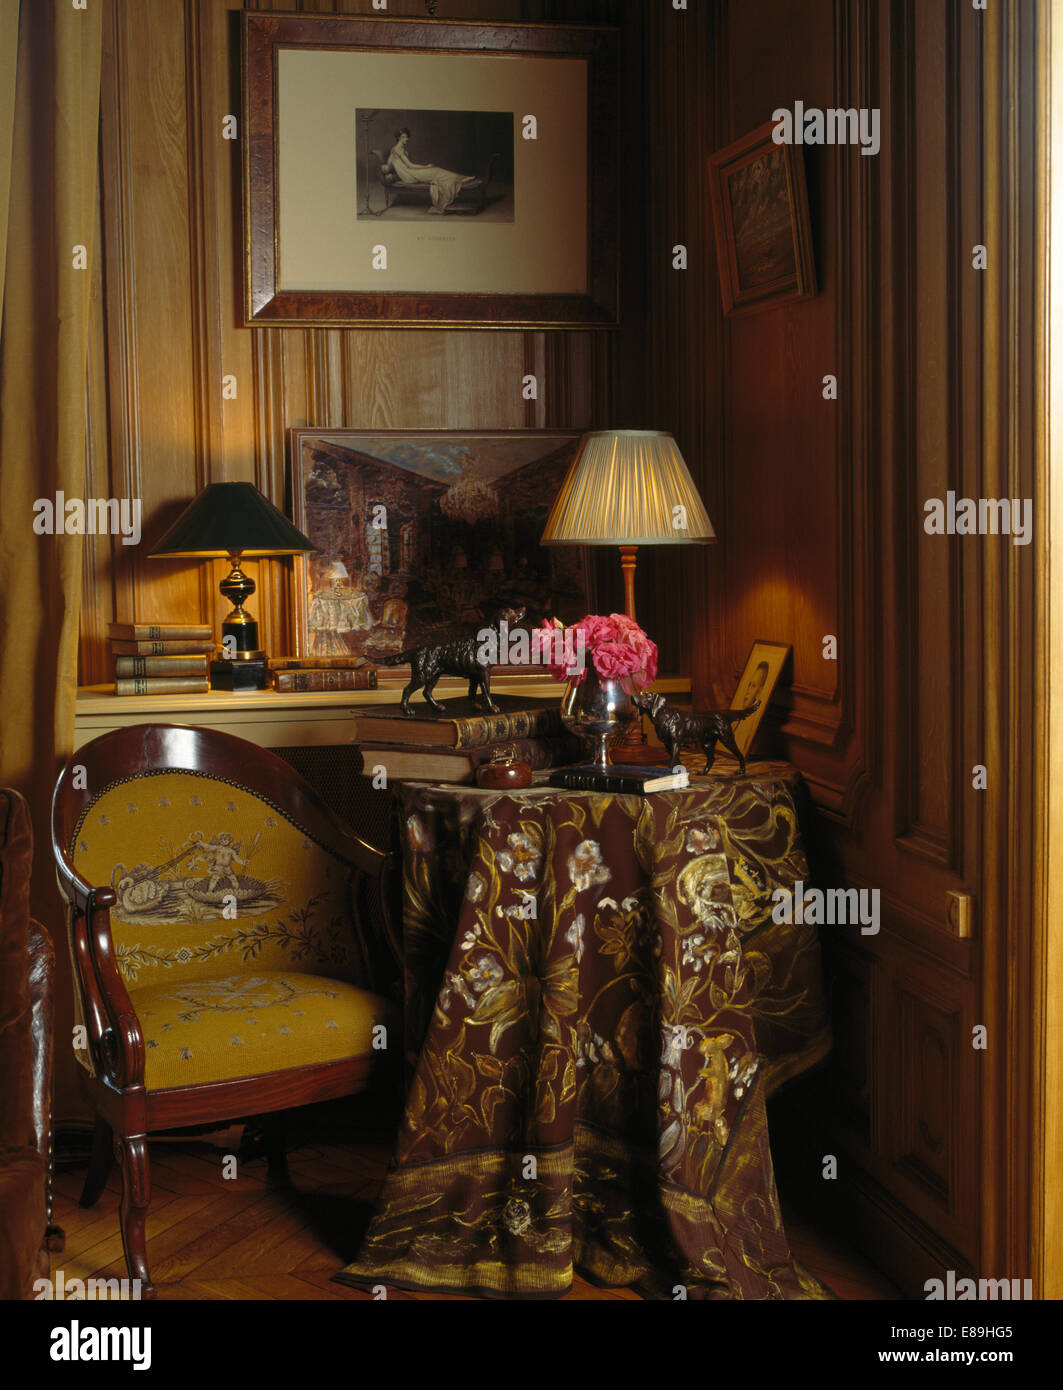 Antique chair and small table with lighted lamp and richly patterned cloth in corner of wood paneled study - Stock Image